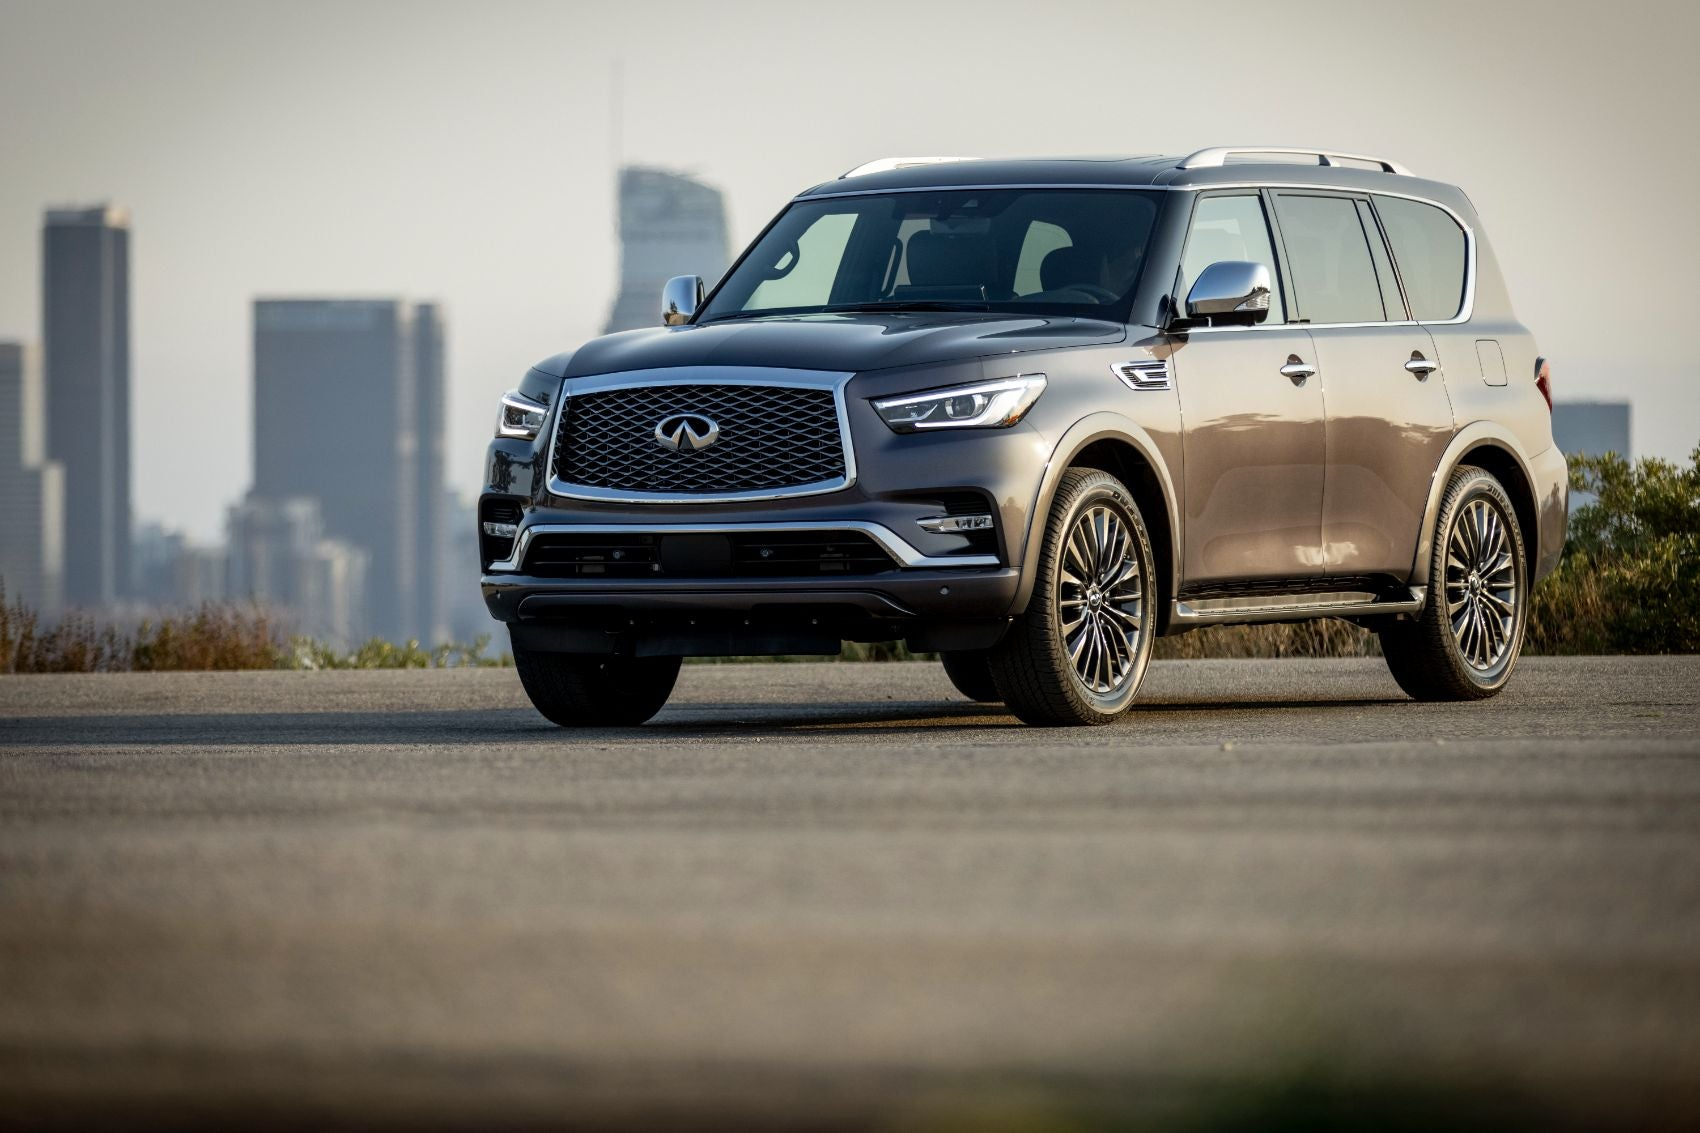 2022 Infiniti QX80 Overview: Cargo Space, Tech & Safety Features, Pricing & More